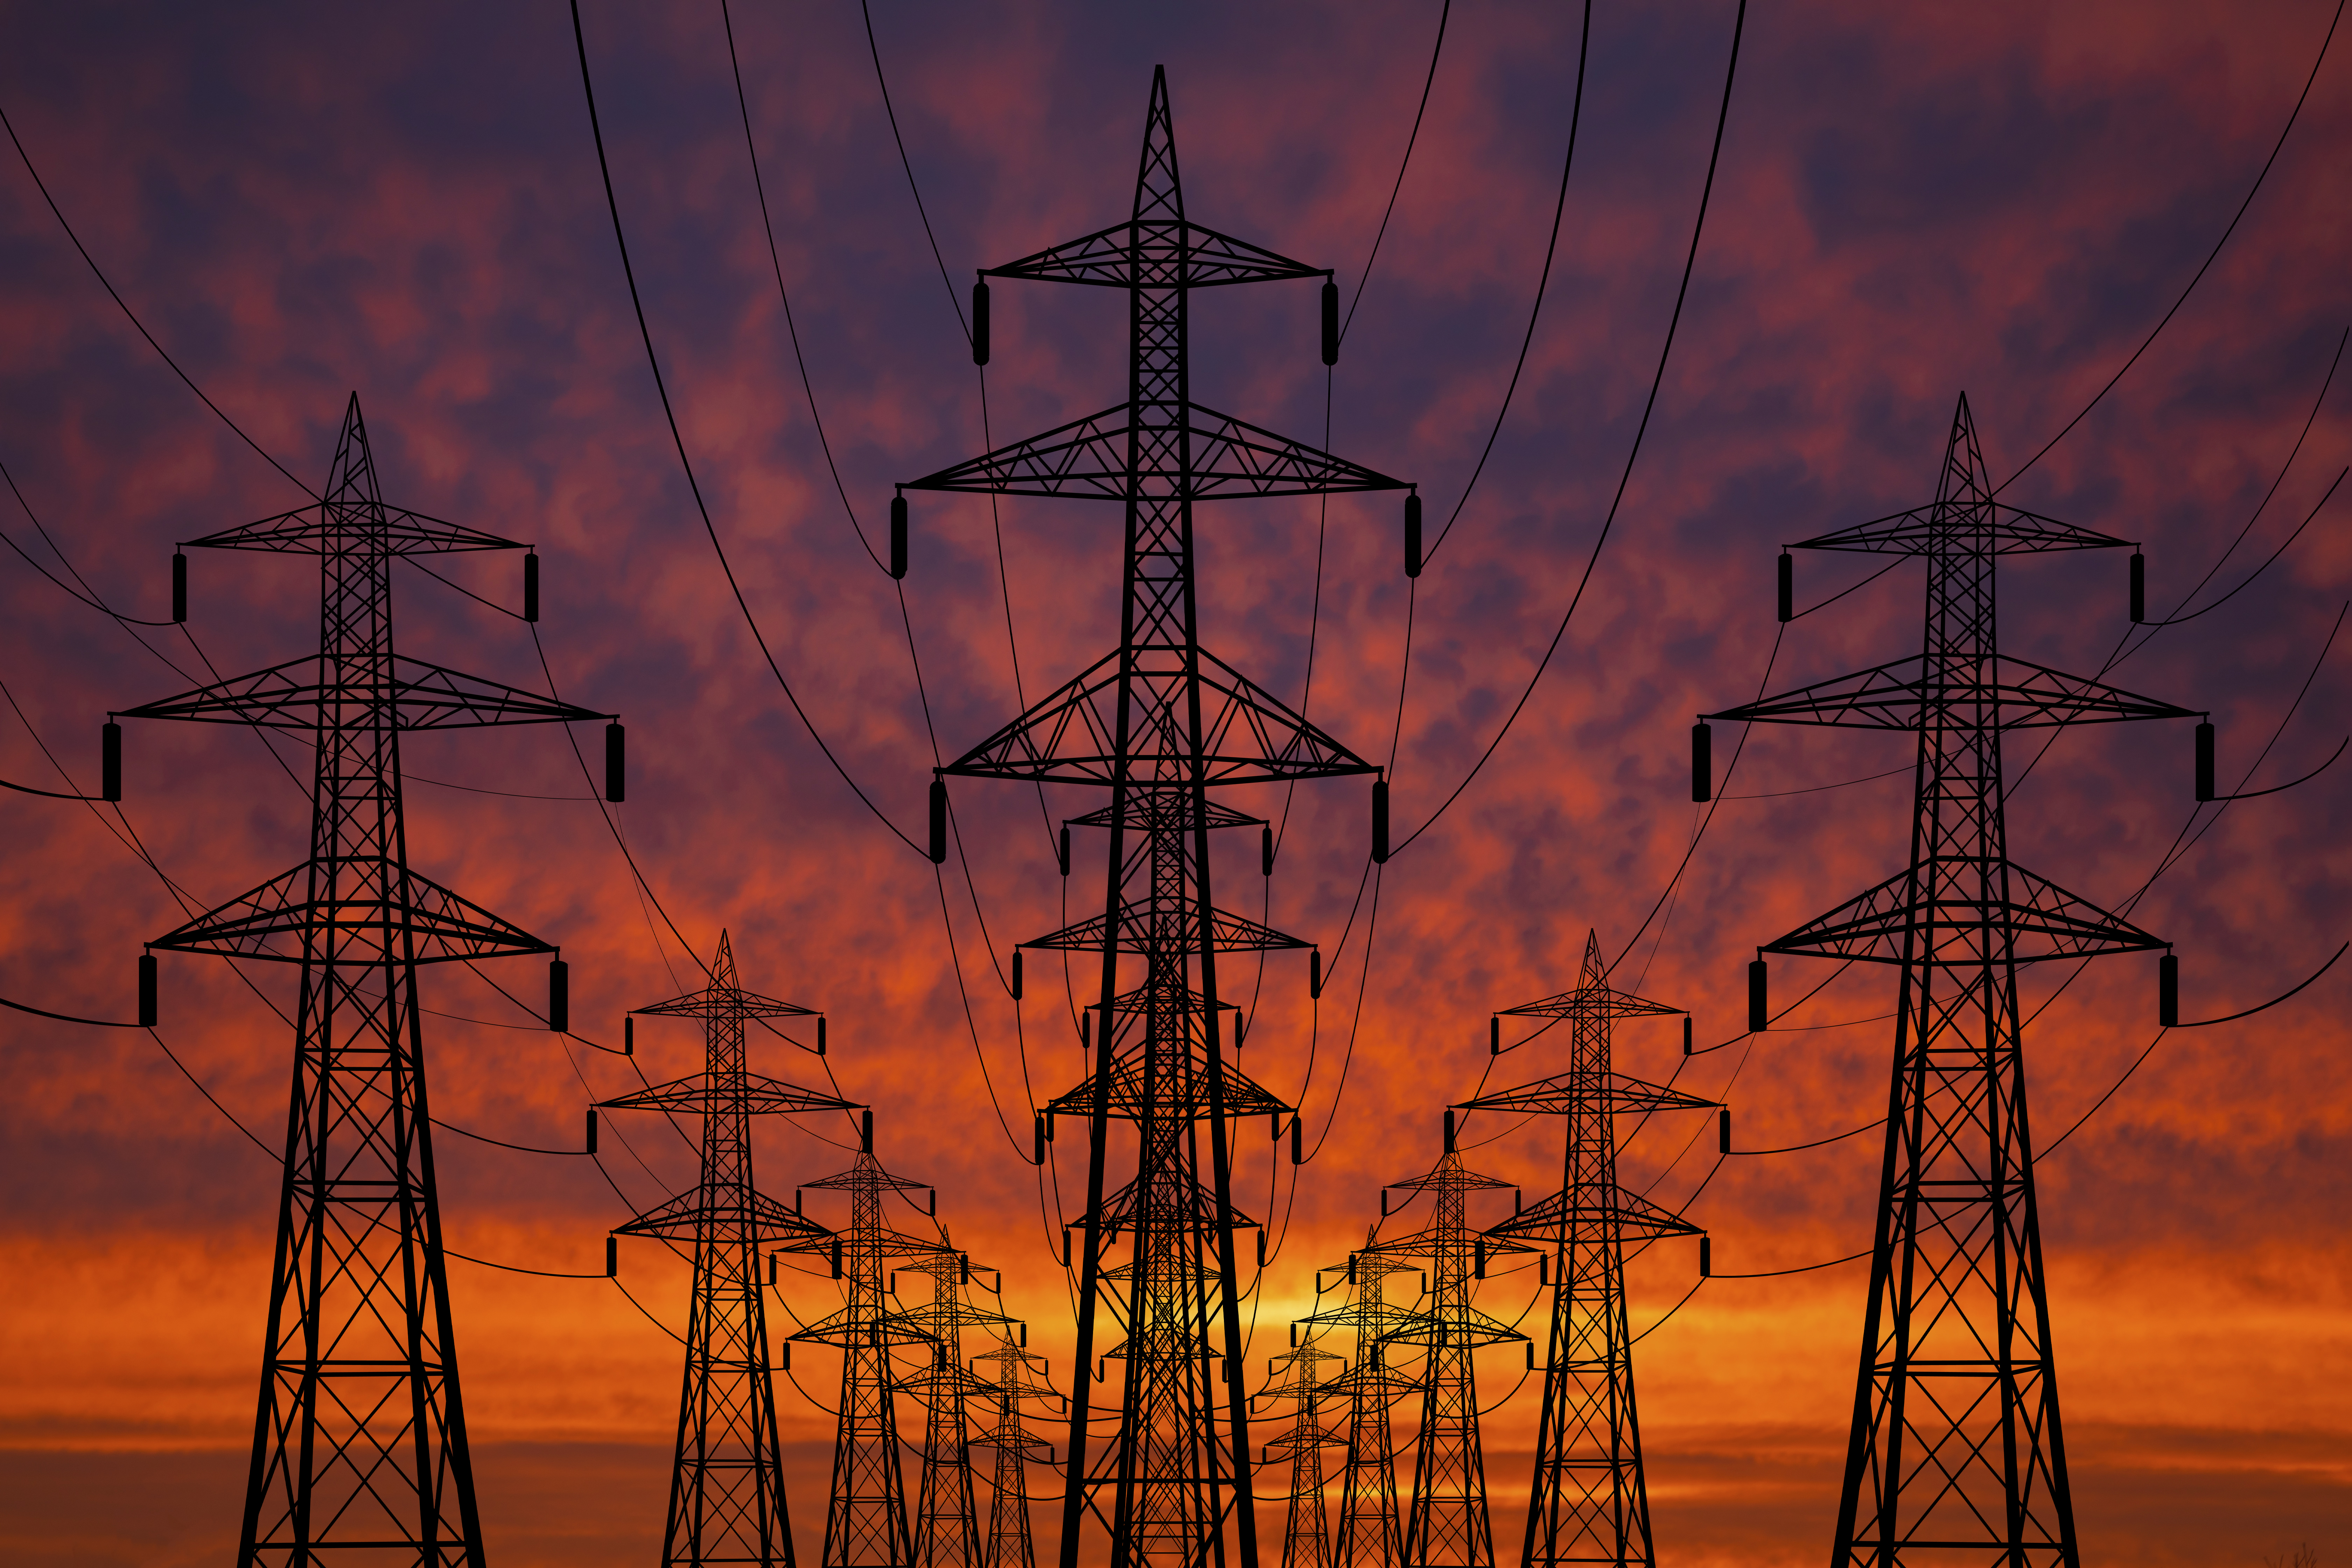 Photograph of High voltage towers at sunset. Power lines against the sky